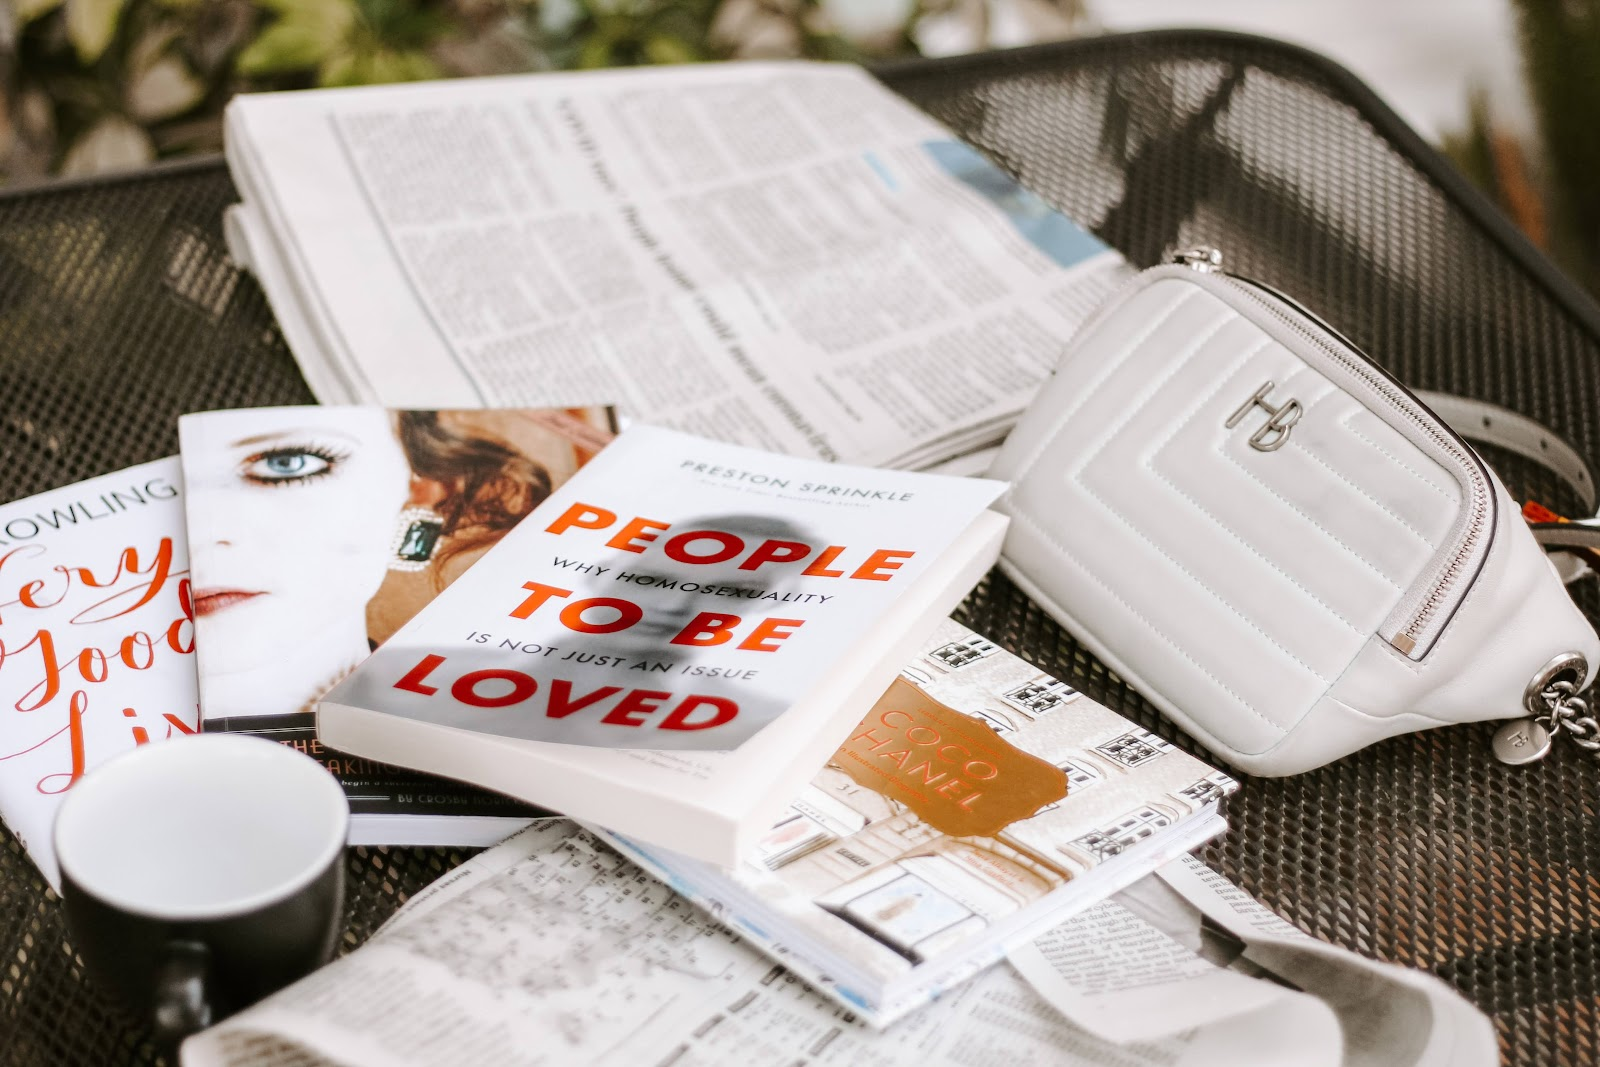 Books and a newspaper on a sidewalk table with Maggie's stylistic fanny pack